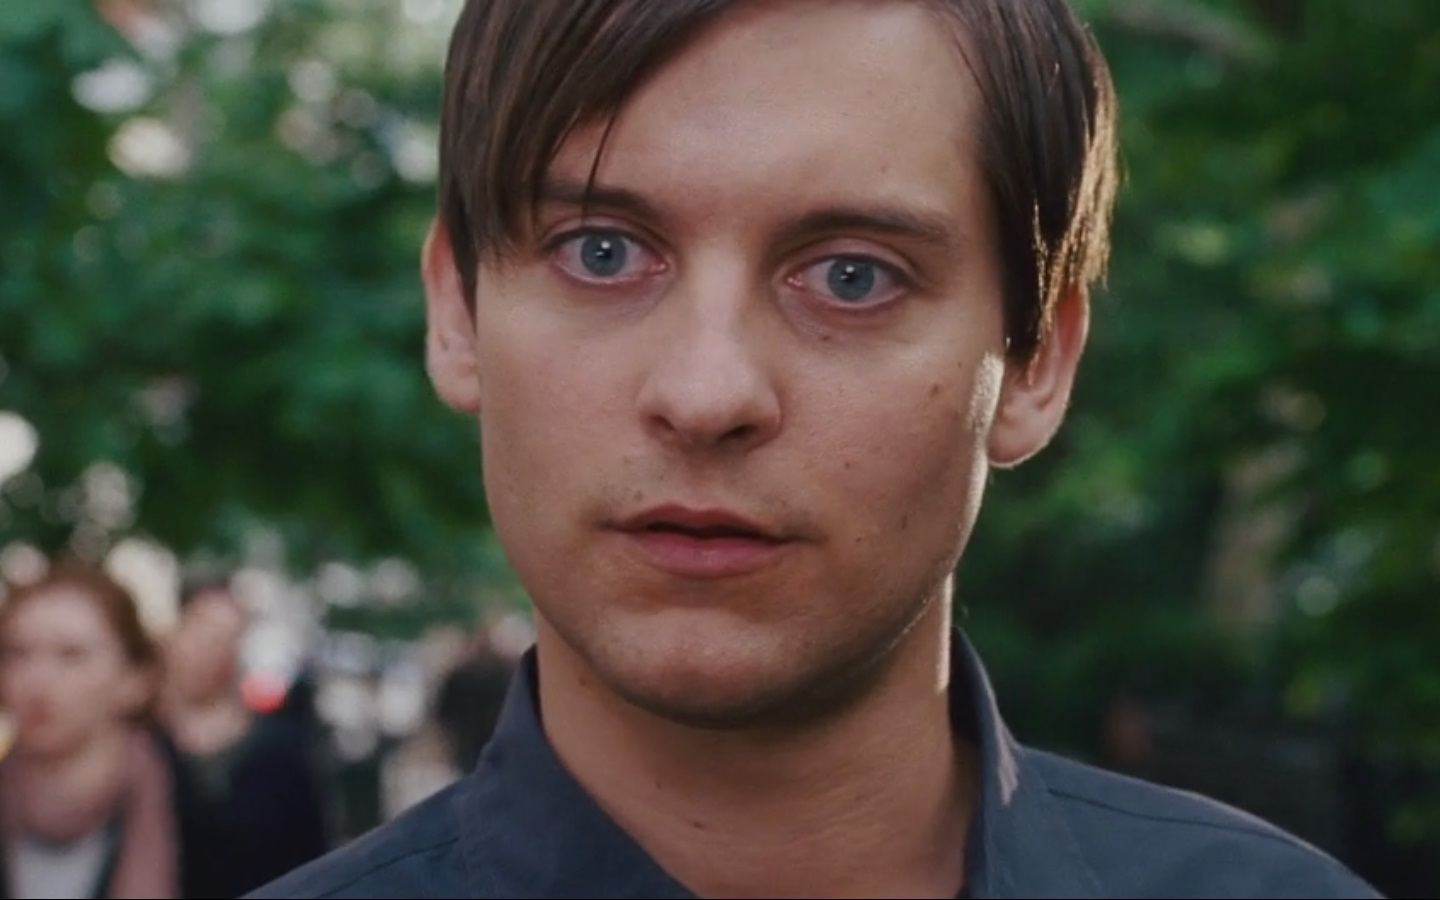 Tobey Maguire Tobey's wallpaper Tobey Maguire